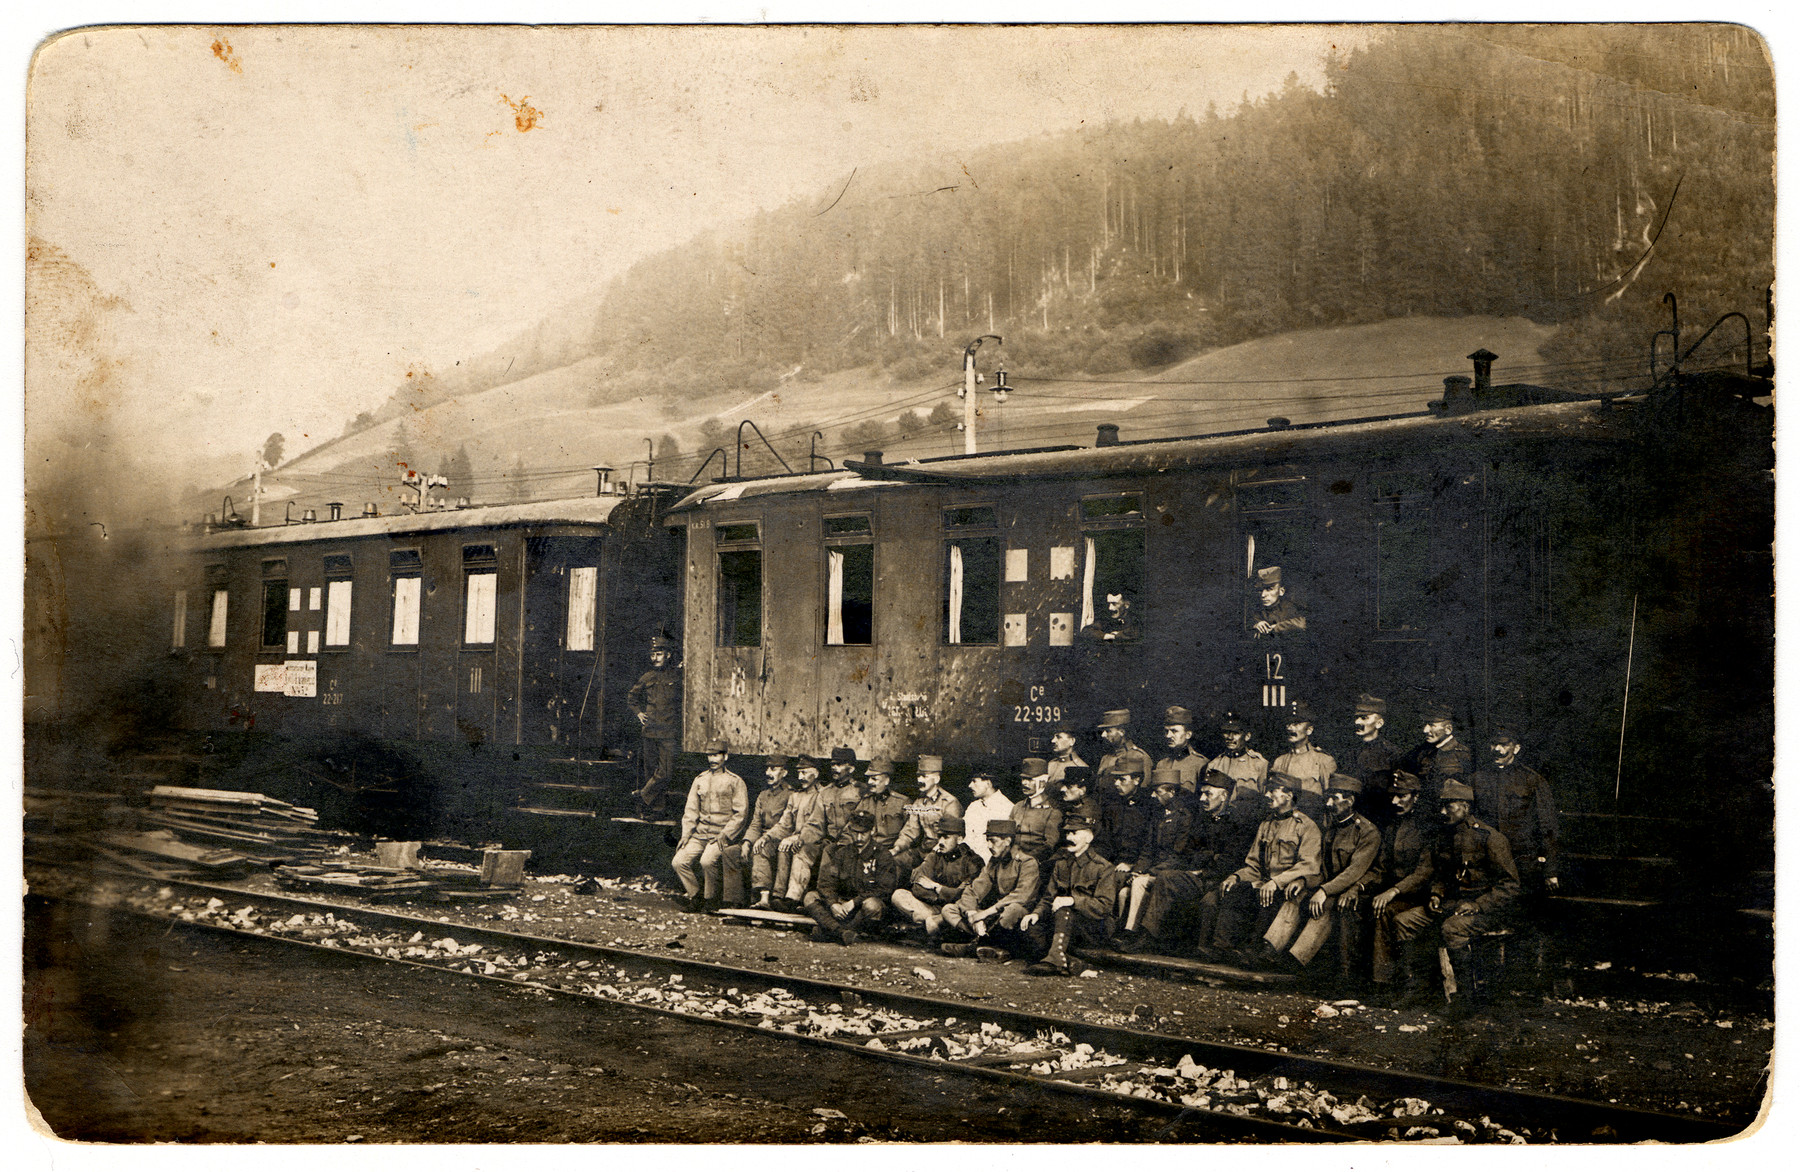 Hungarian soldiers pose in front of a train during World War I.  Among those pictured is Sandor Herland, the donor's grandfather.